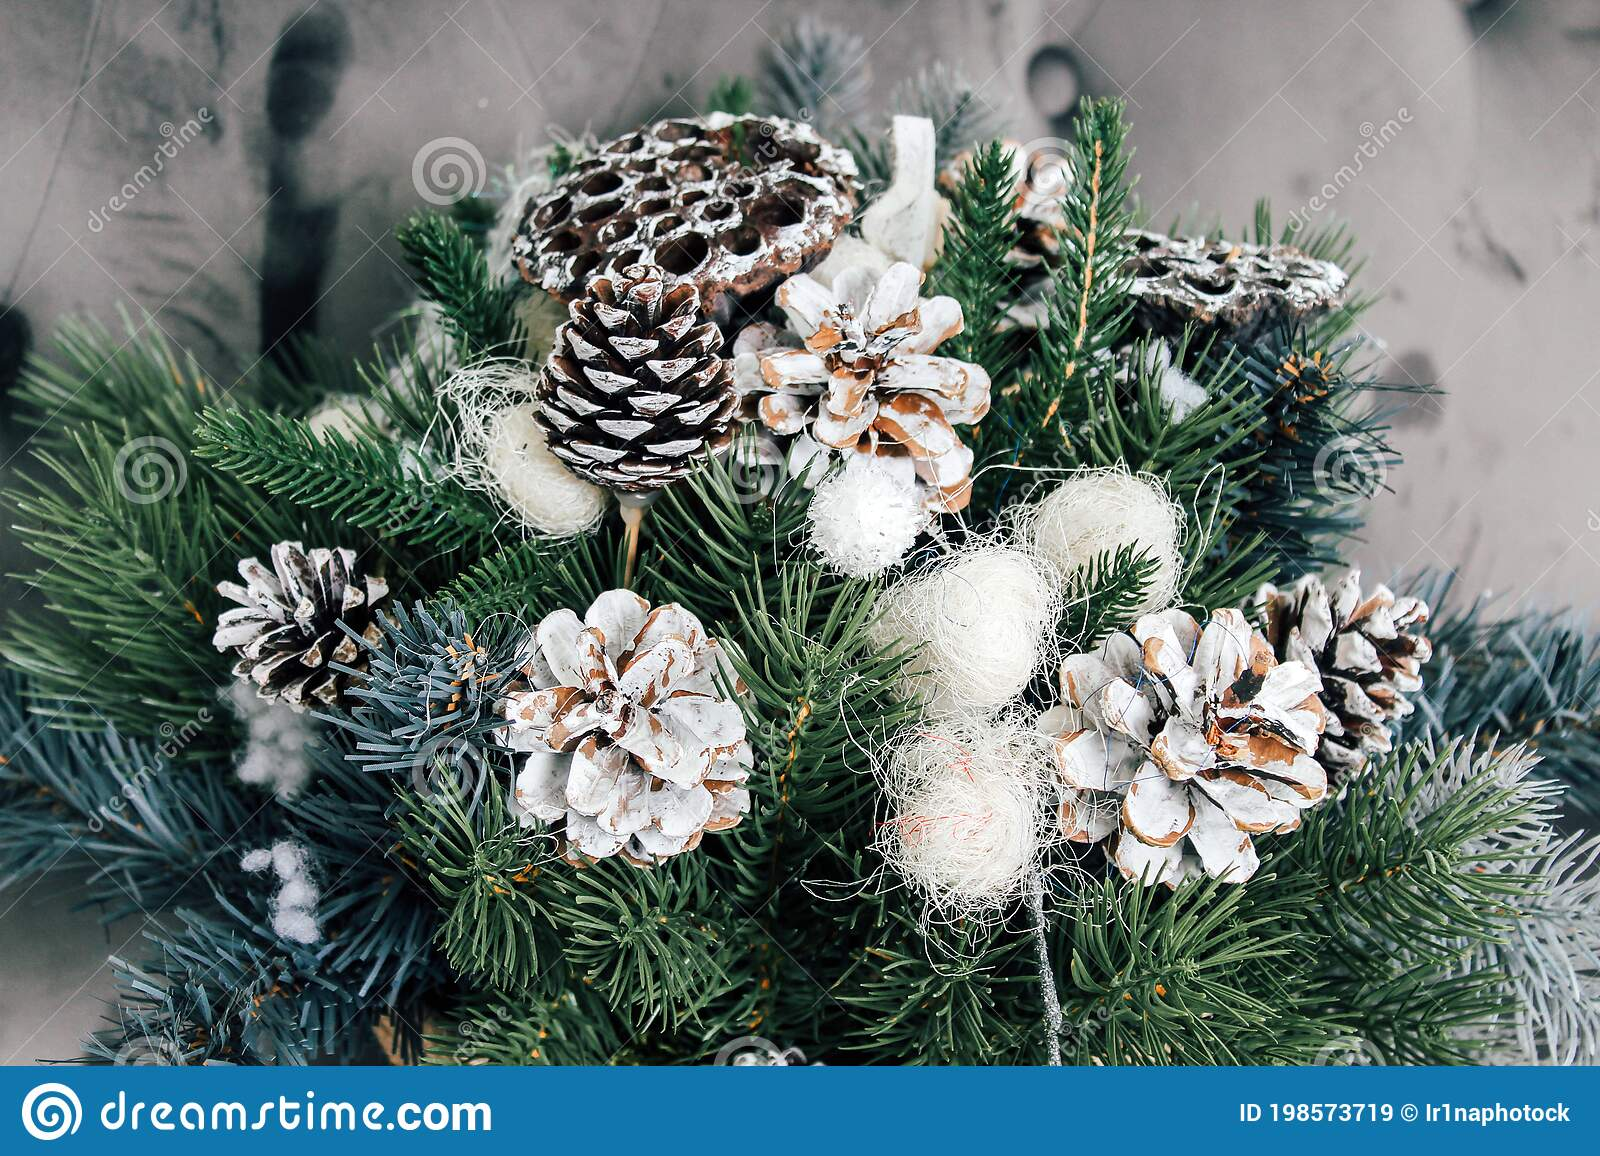 New Year S Composition Of Dried Lotus Flowers Cones And Spruce Branches Diy Bouquet For Christmas Stock Image Image Of Decor Branches 198573719